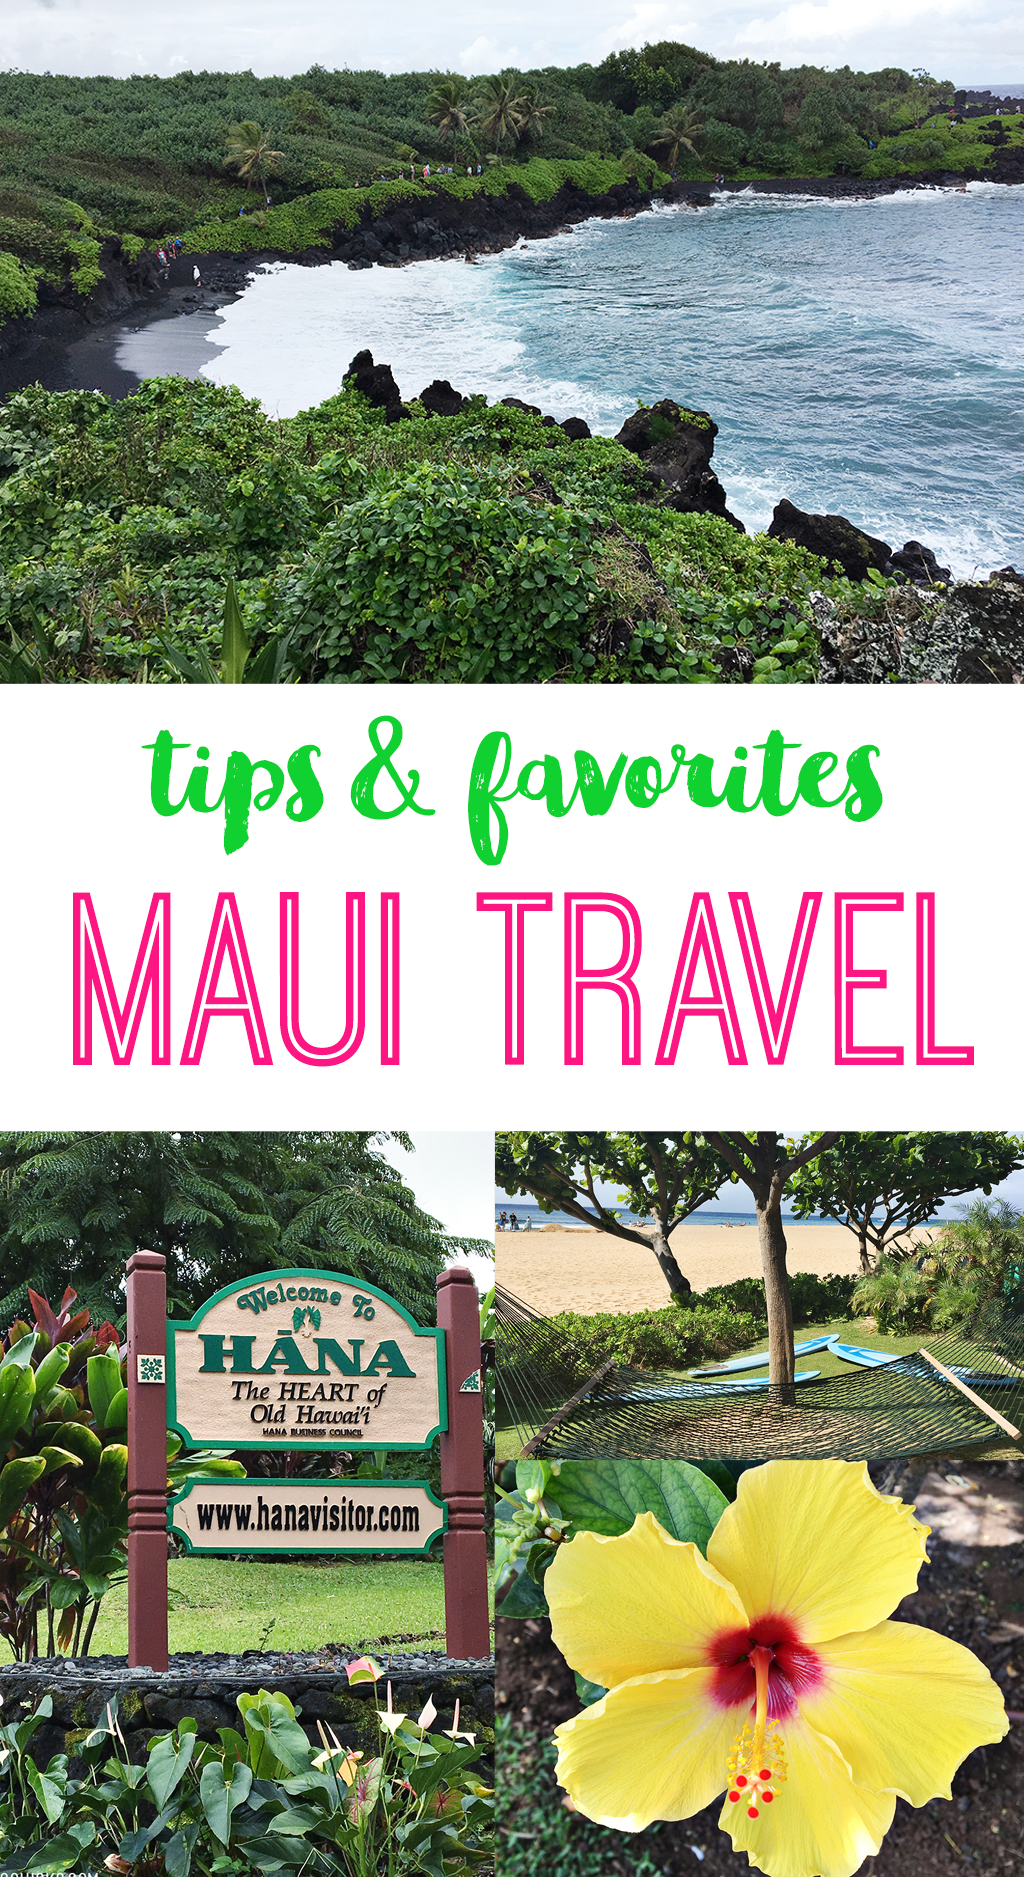 Maui Travel Tips and Favorites | The Best of Maui Activities, Food and Fun In Maui